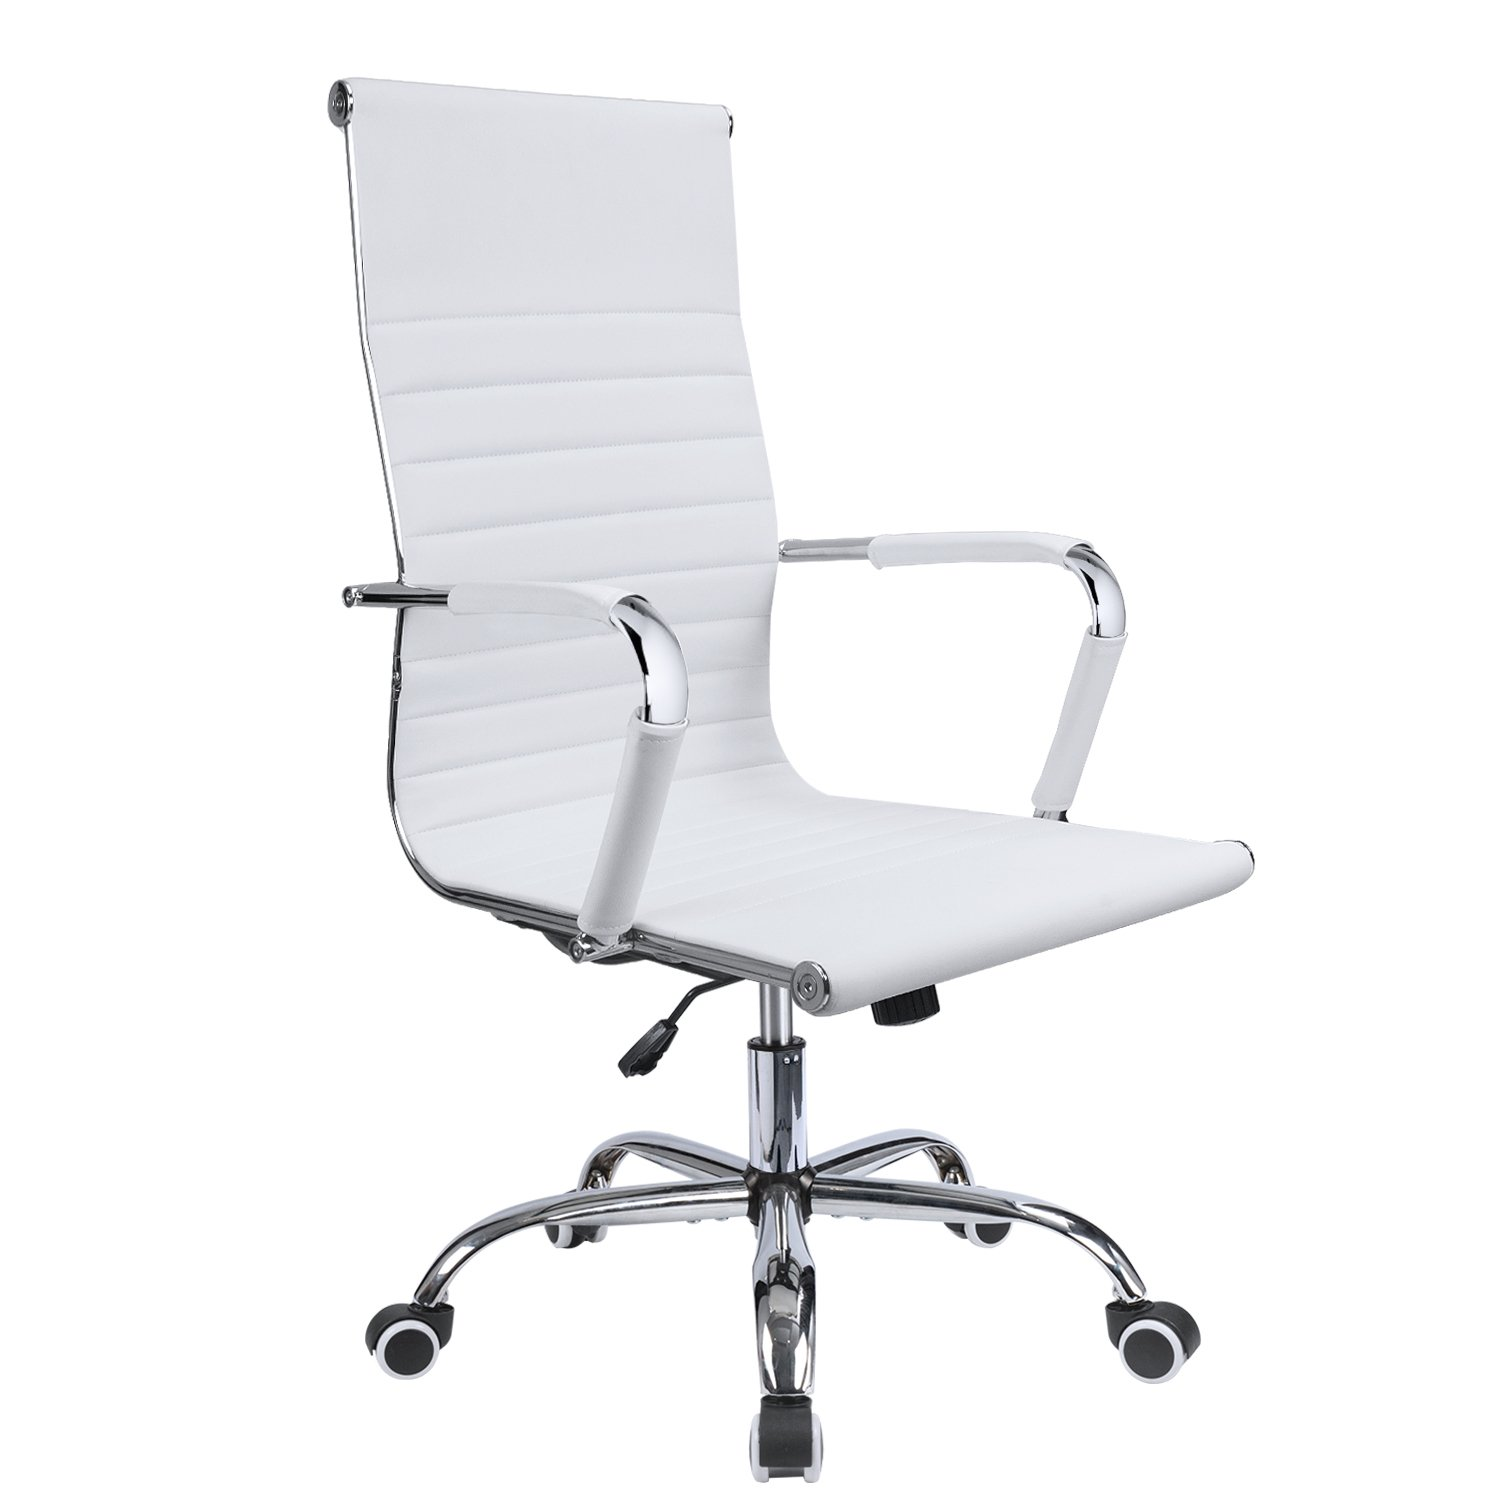 Devoko Ribbed Office Chair Mid Back Leather Height Adjustable Swivel Desk Chairs Ergonomic Executive Conference Task Chair with Arms (White)